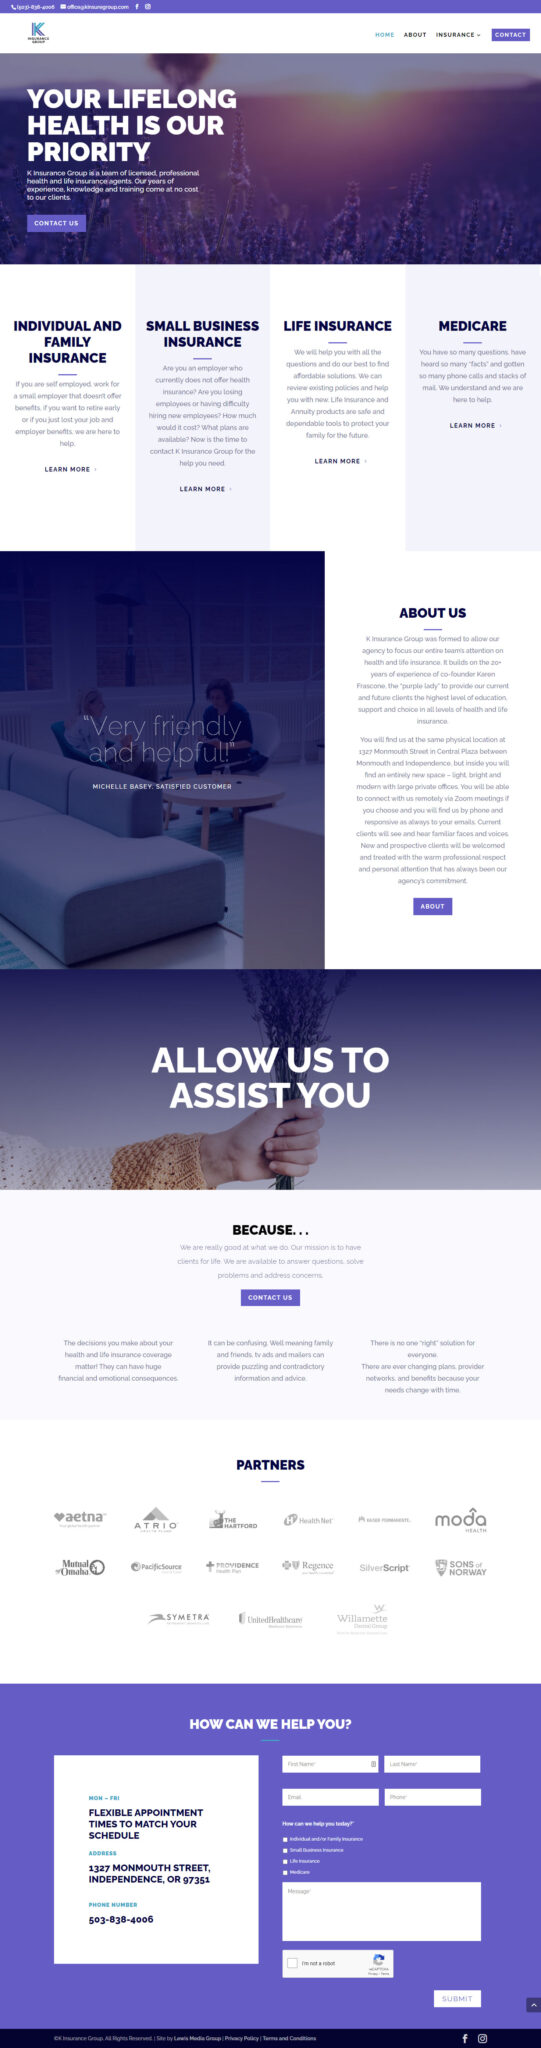 K Insurance Group (Pfaff-Karren Insurance) home page after redesign